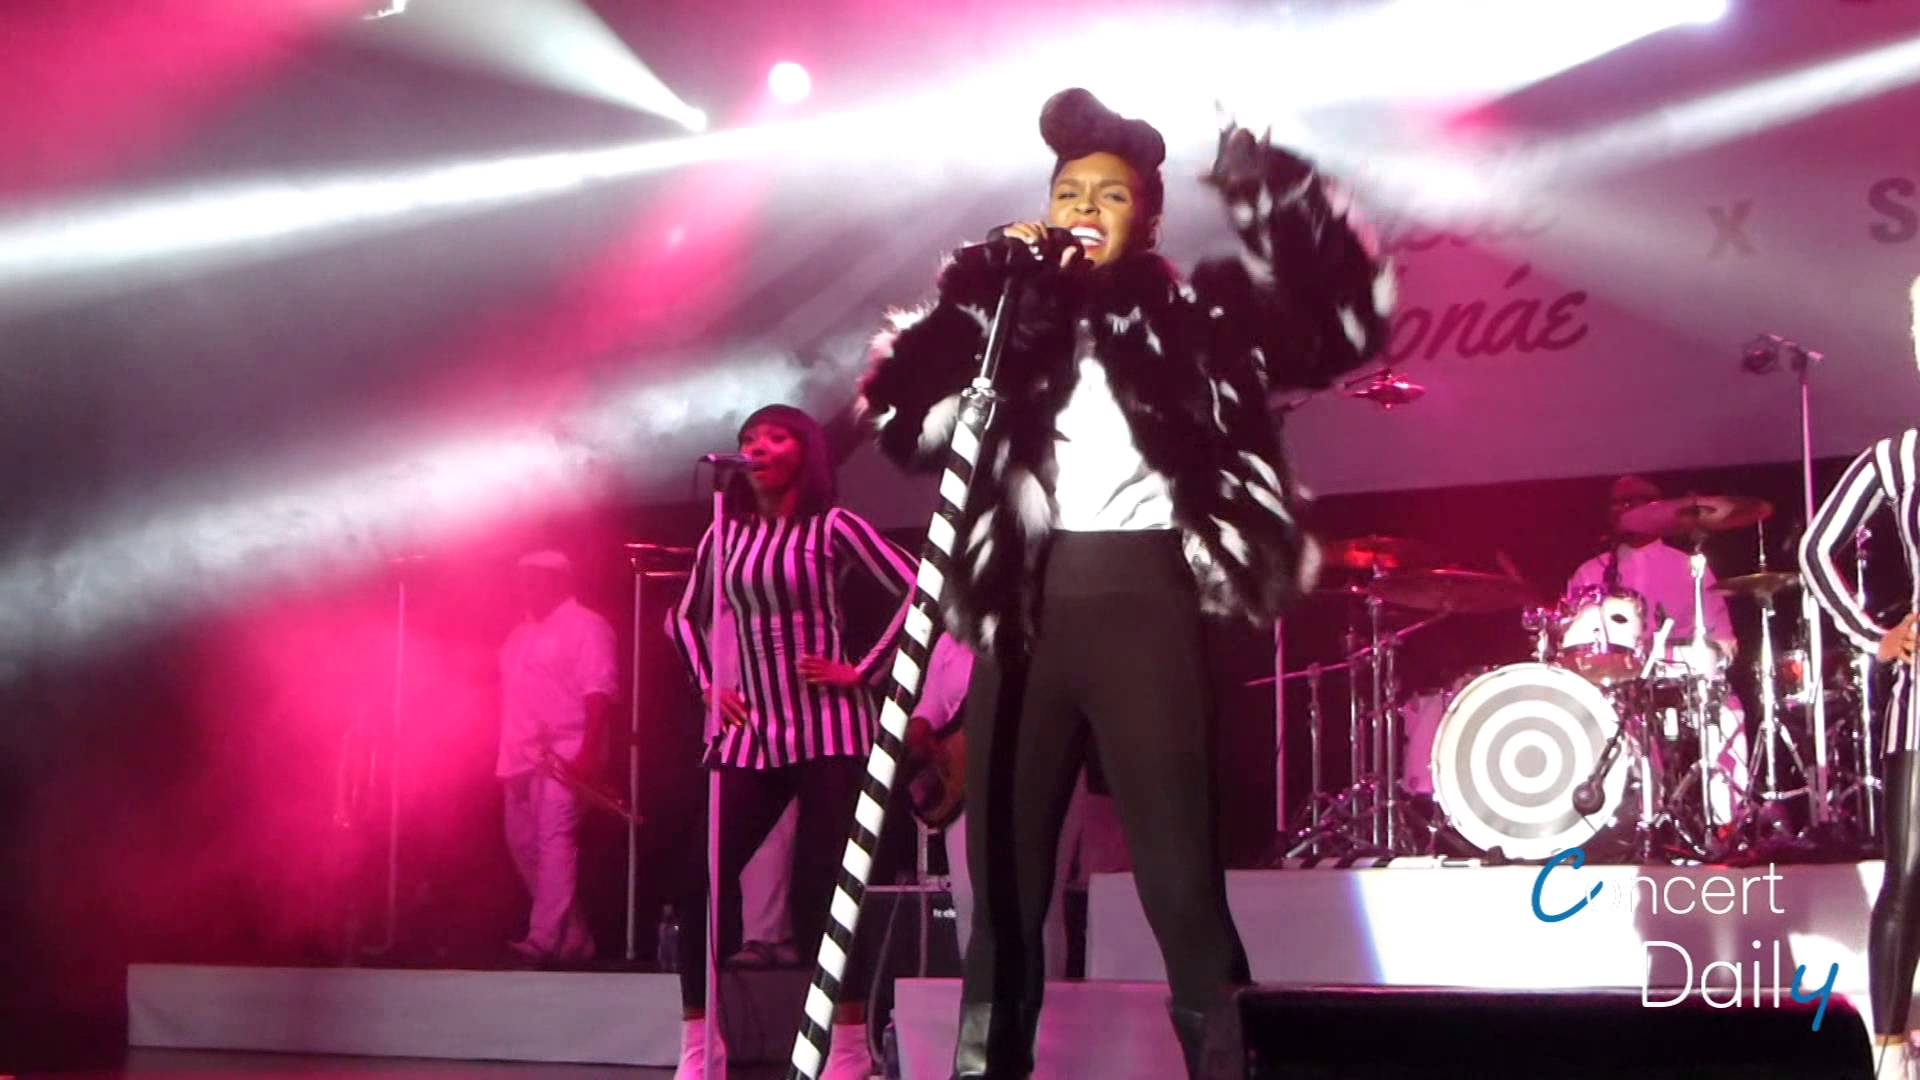 Janelle Monáe performing at the Best Buy Theater - Photo by Concert Daily